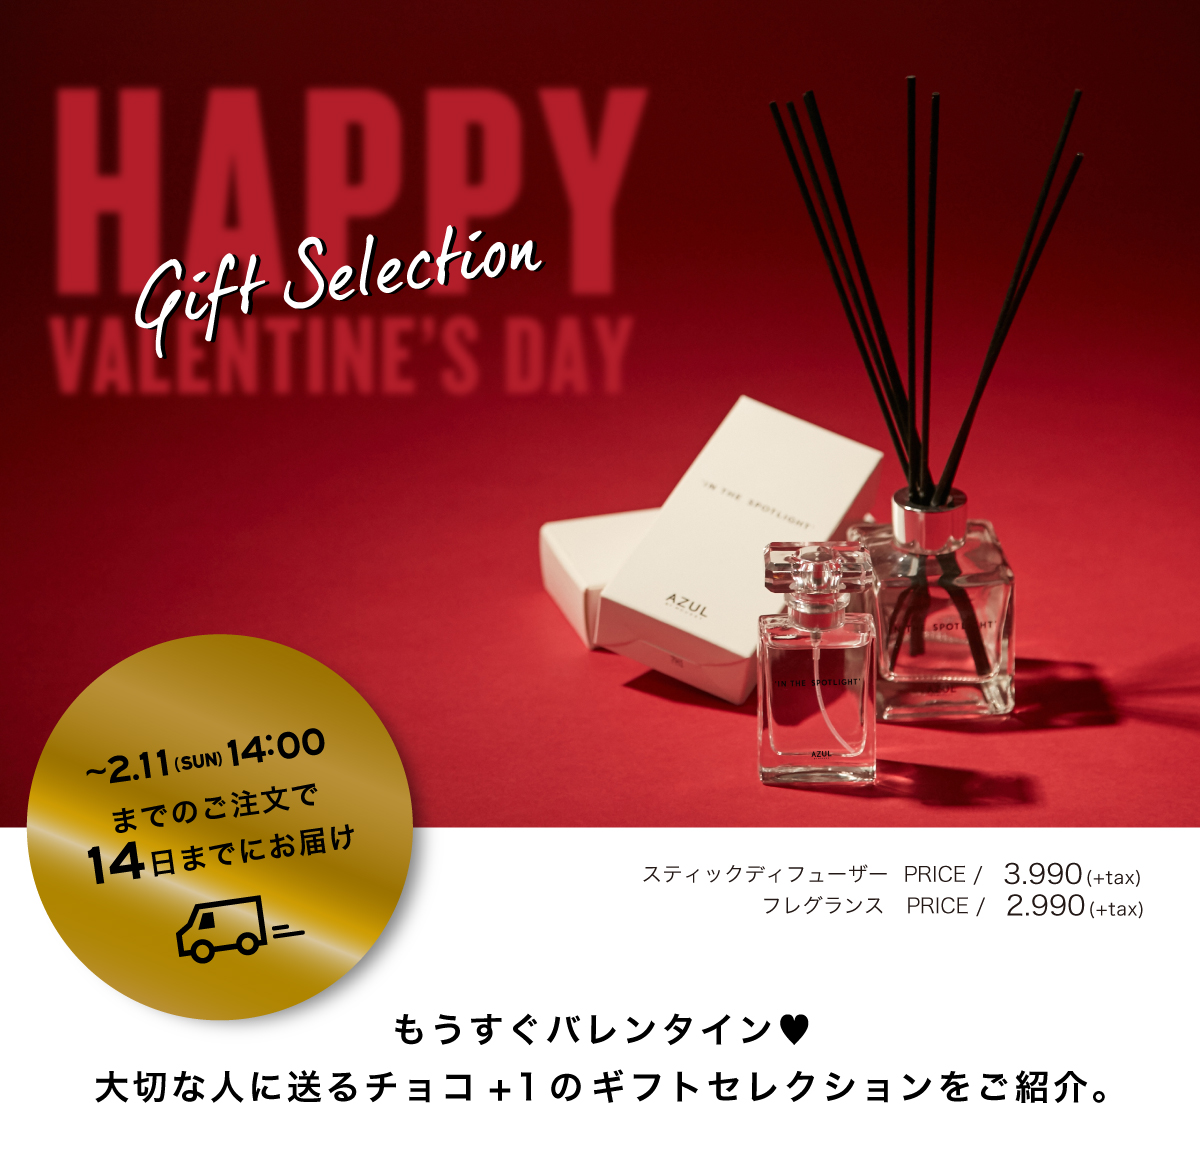 Valentine gift selectionazul by moussy valentine gift selectionazul by moussy negle Gallery